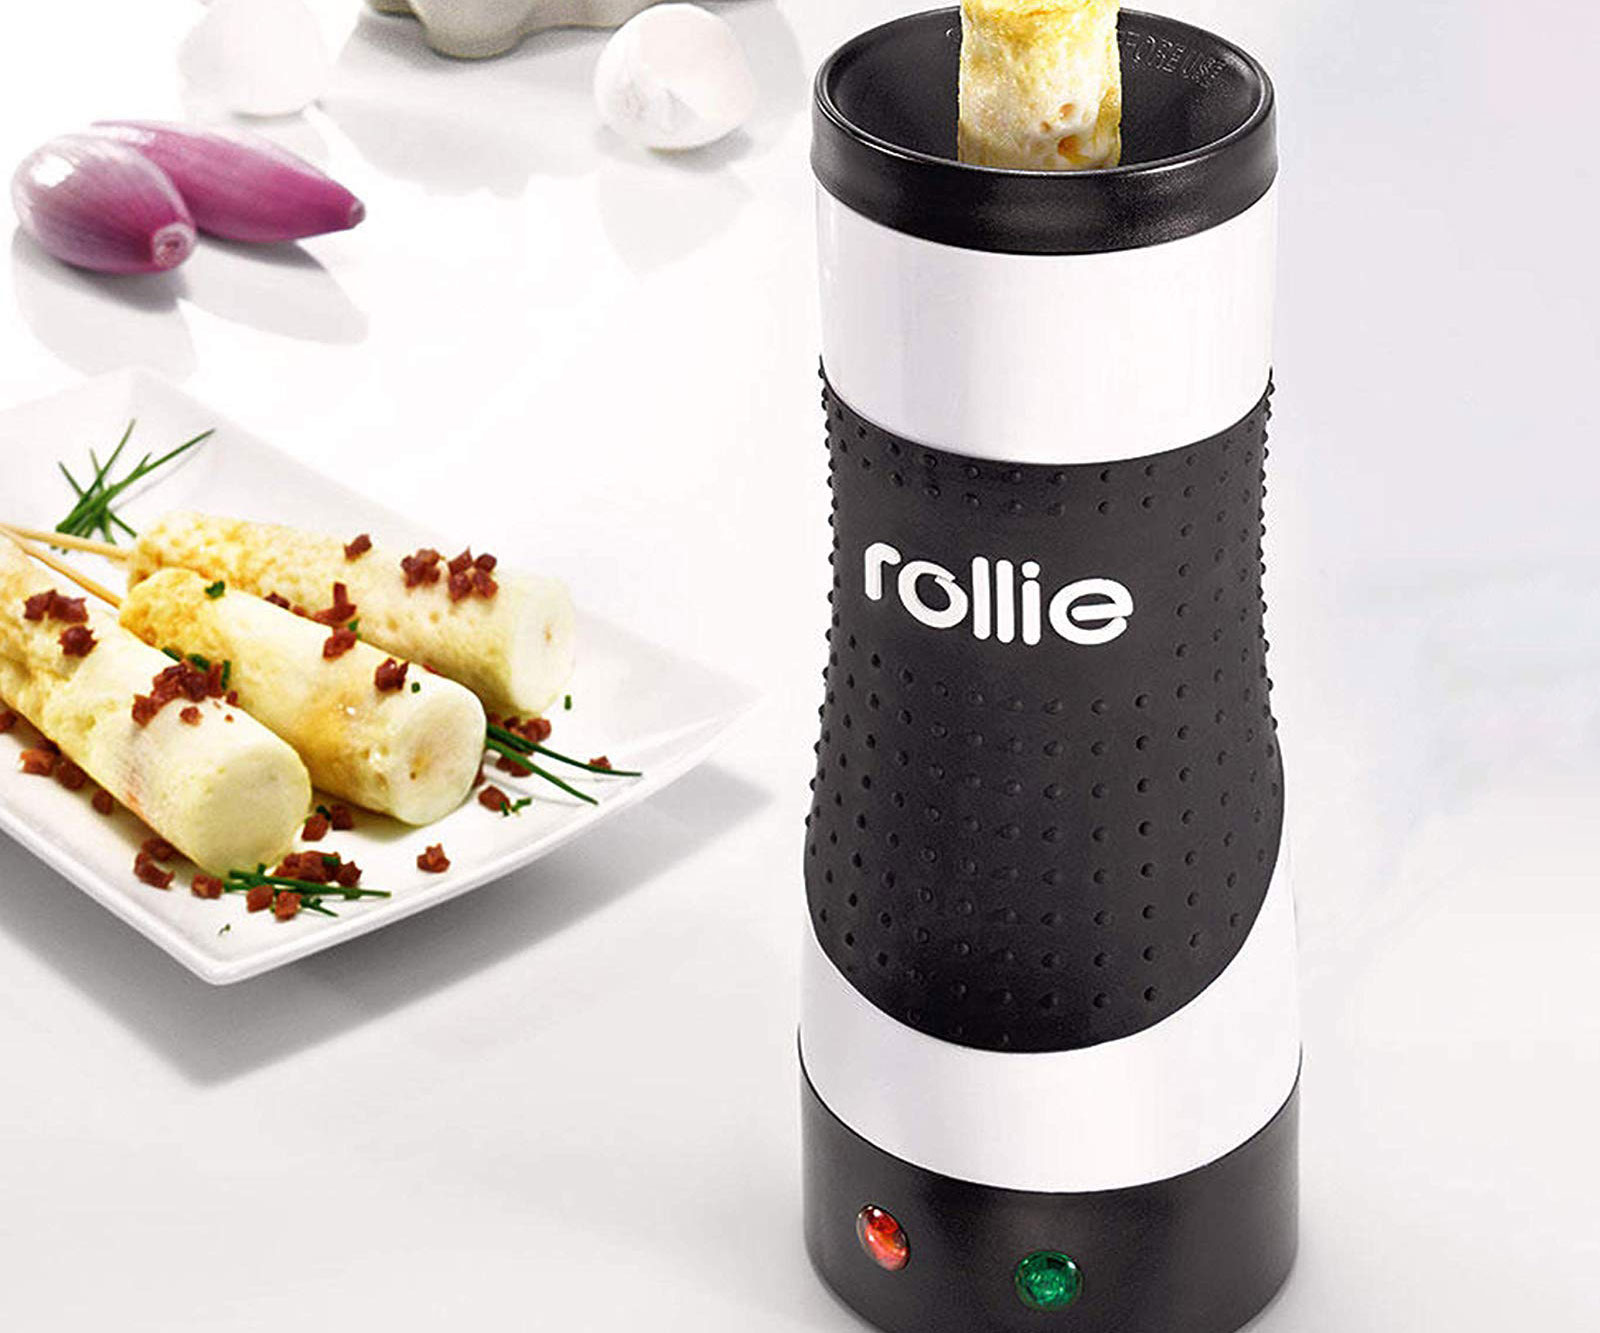 Rollie Automatic Egg Cooker